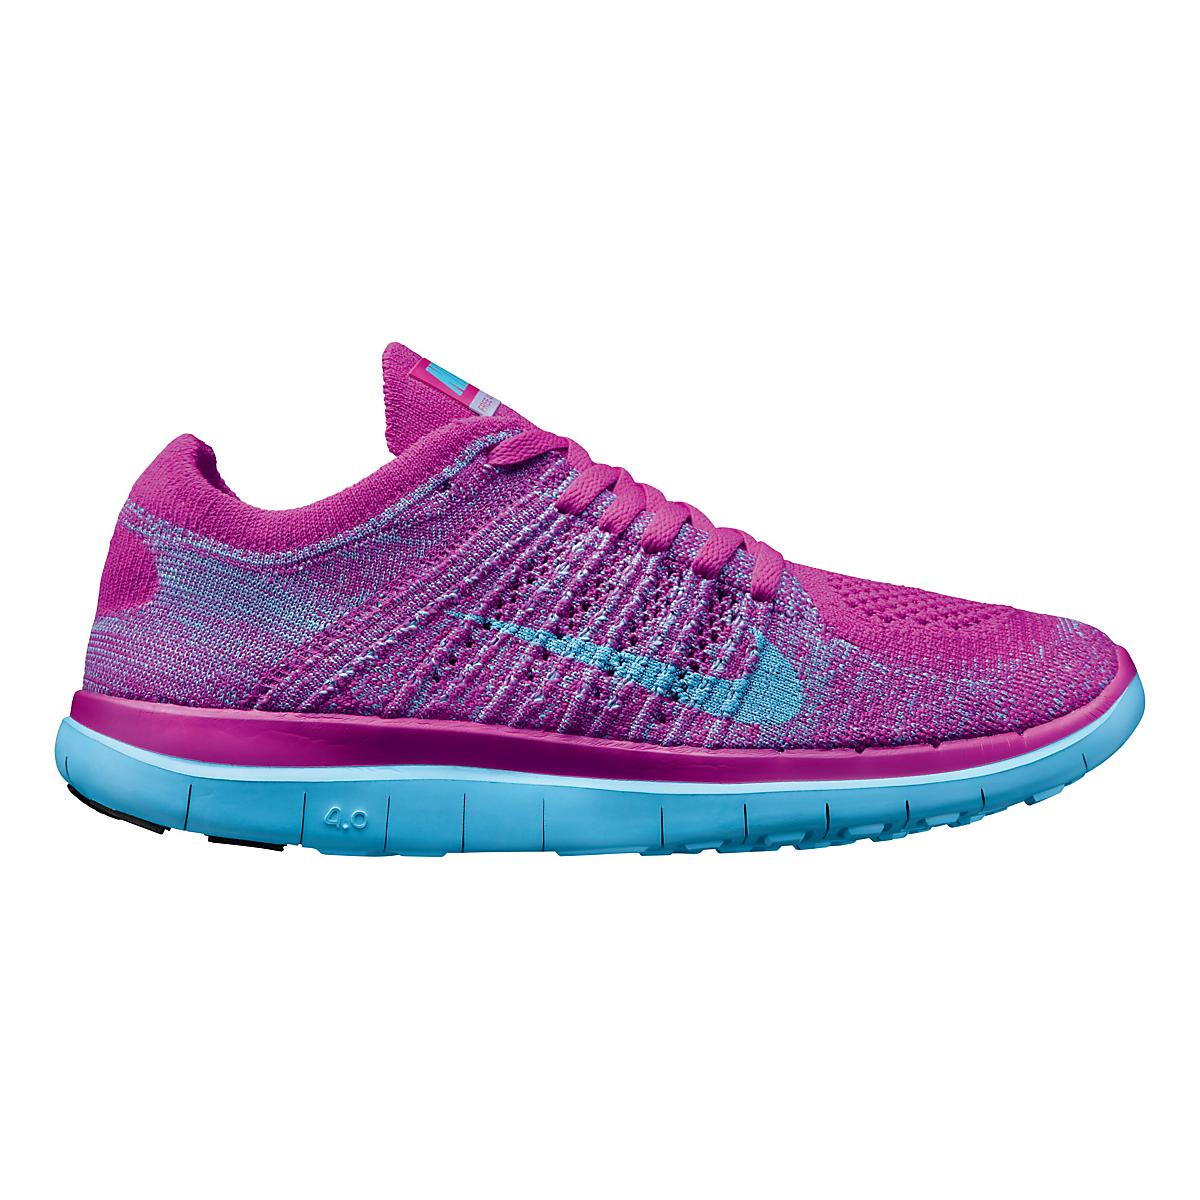 detailed look b3221 4f628 Womens Nike Free 4.0 Flyknit Running Shoe at Road Runner Sports